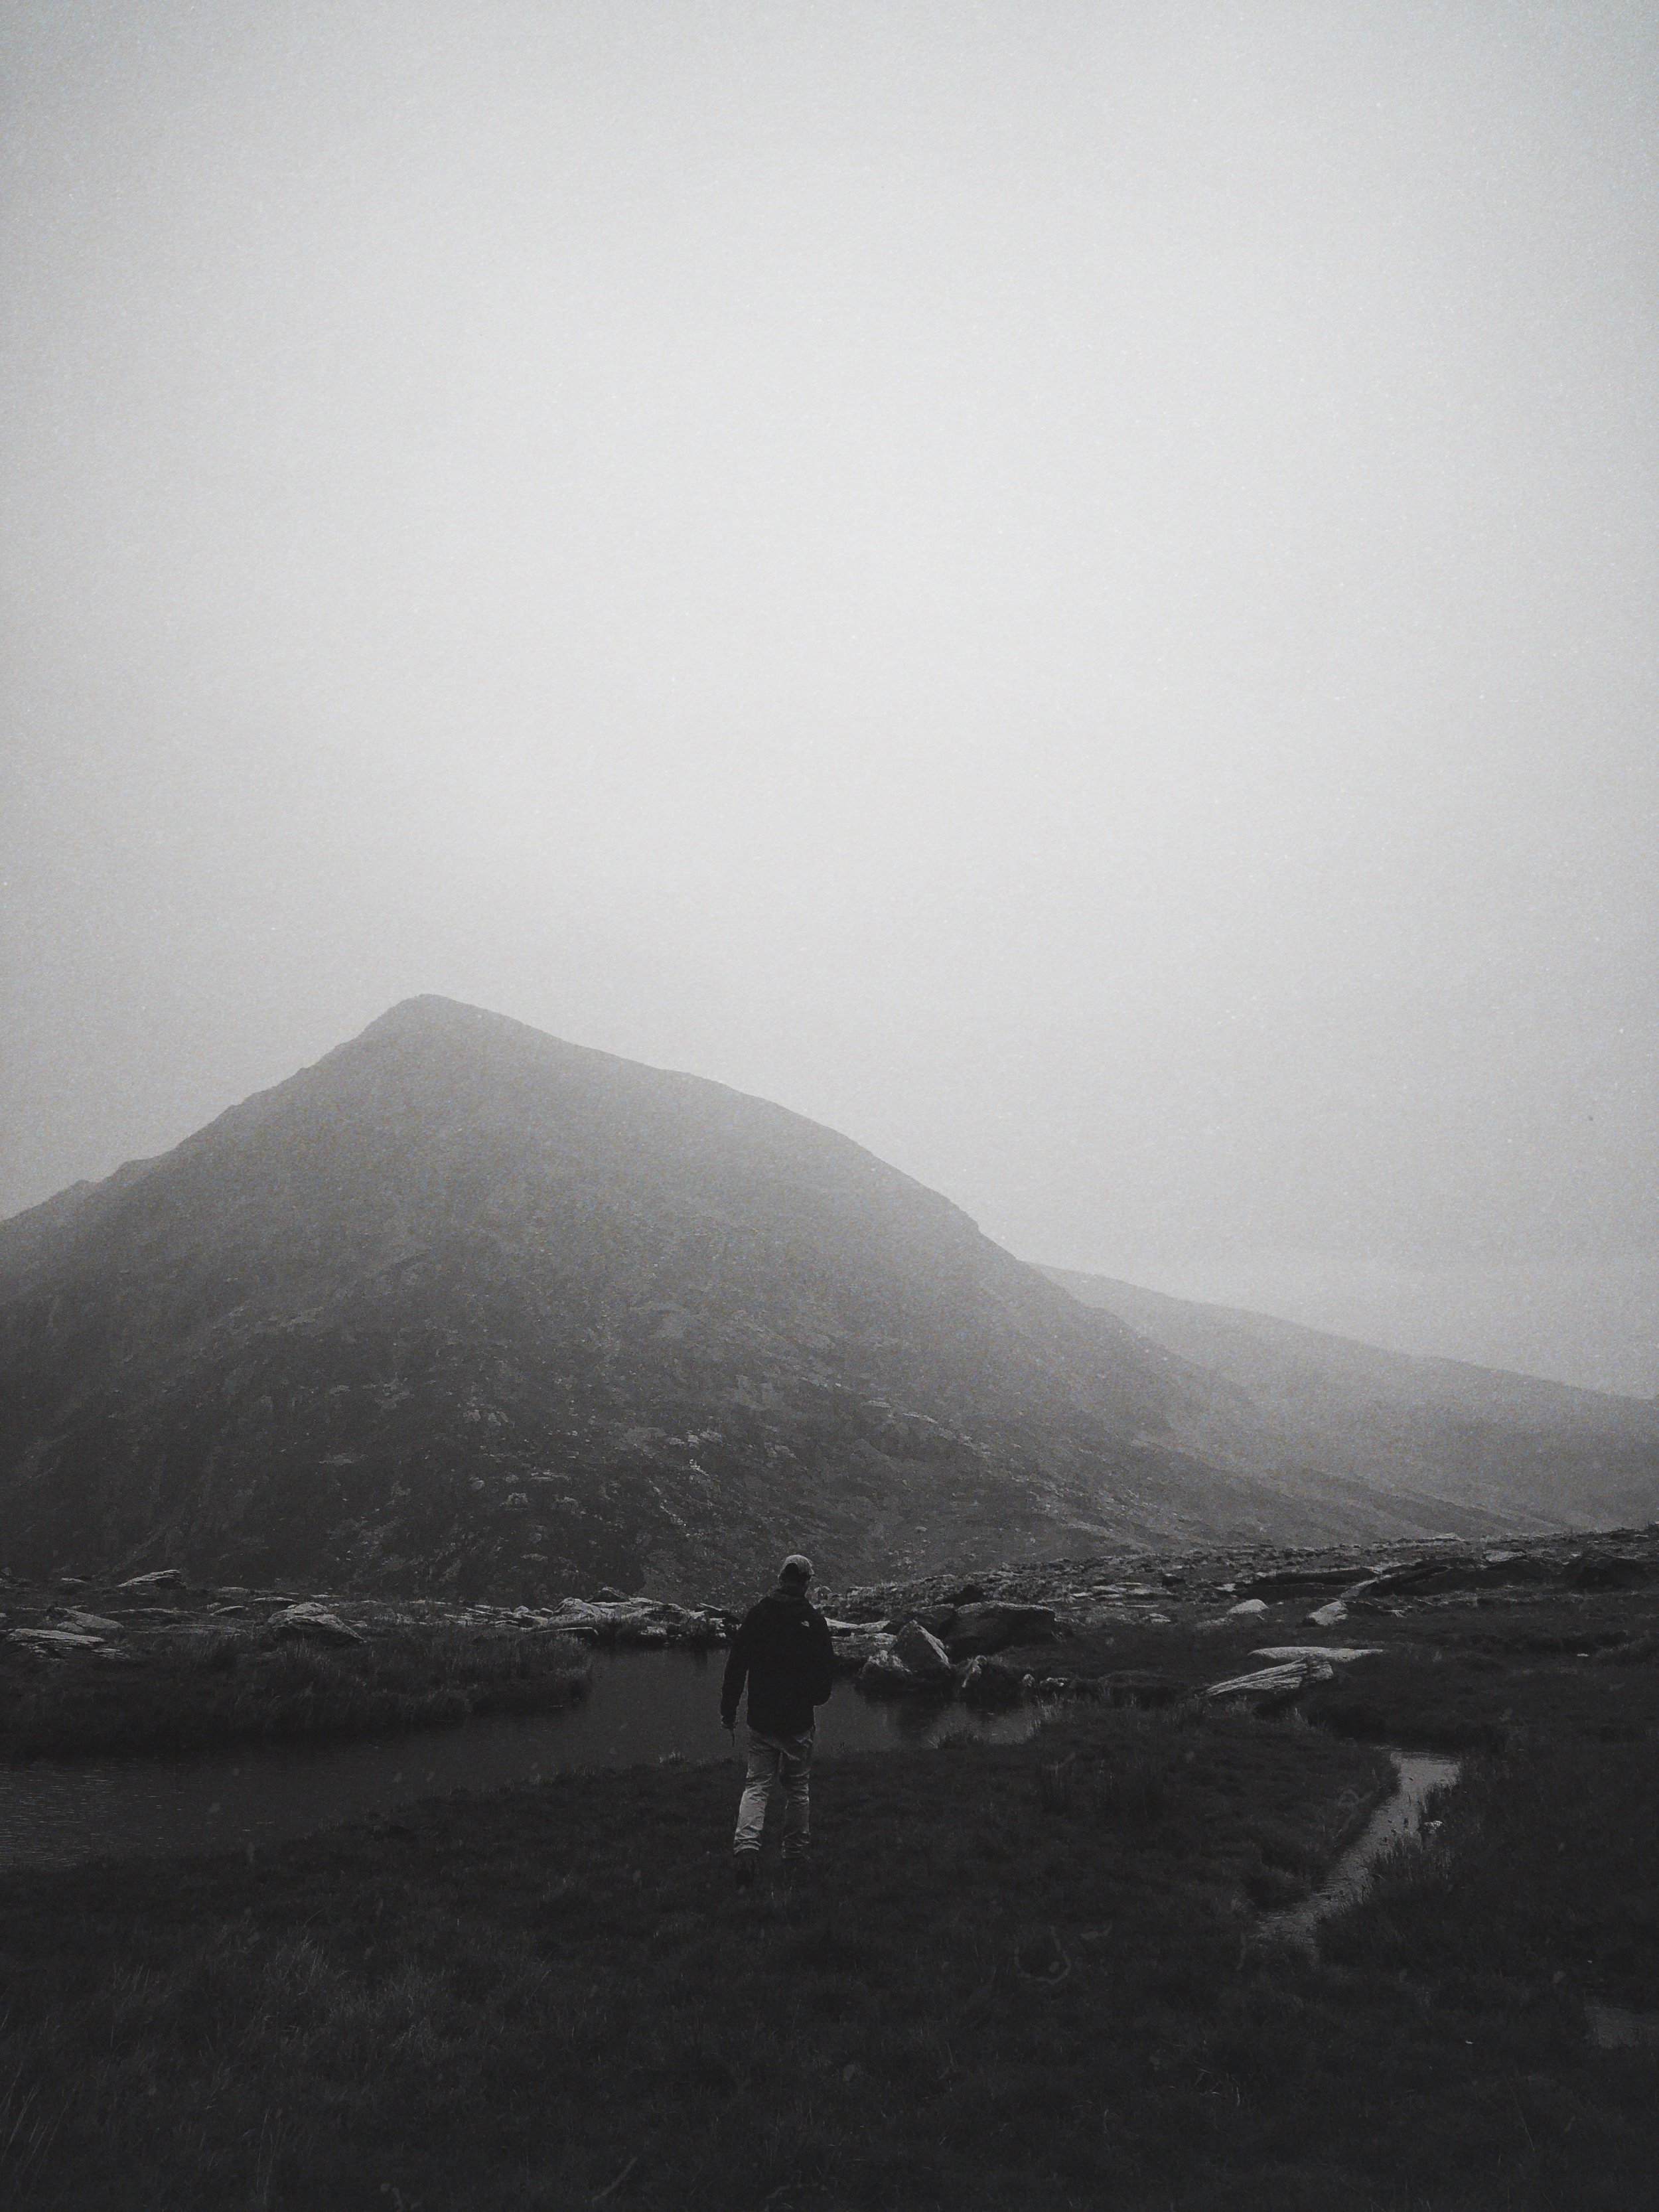 Director Adam surveying the bleak Welsh landscape on a location scout.